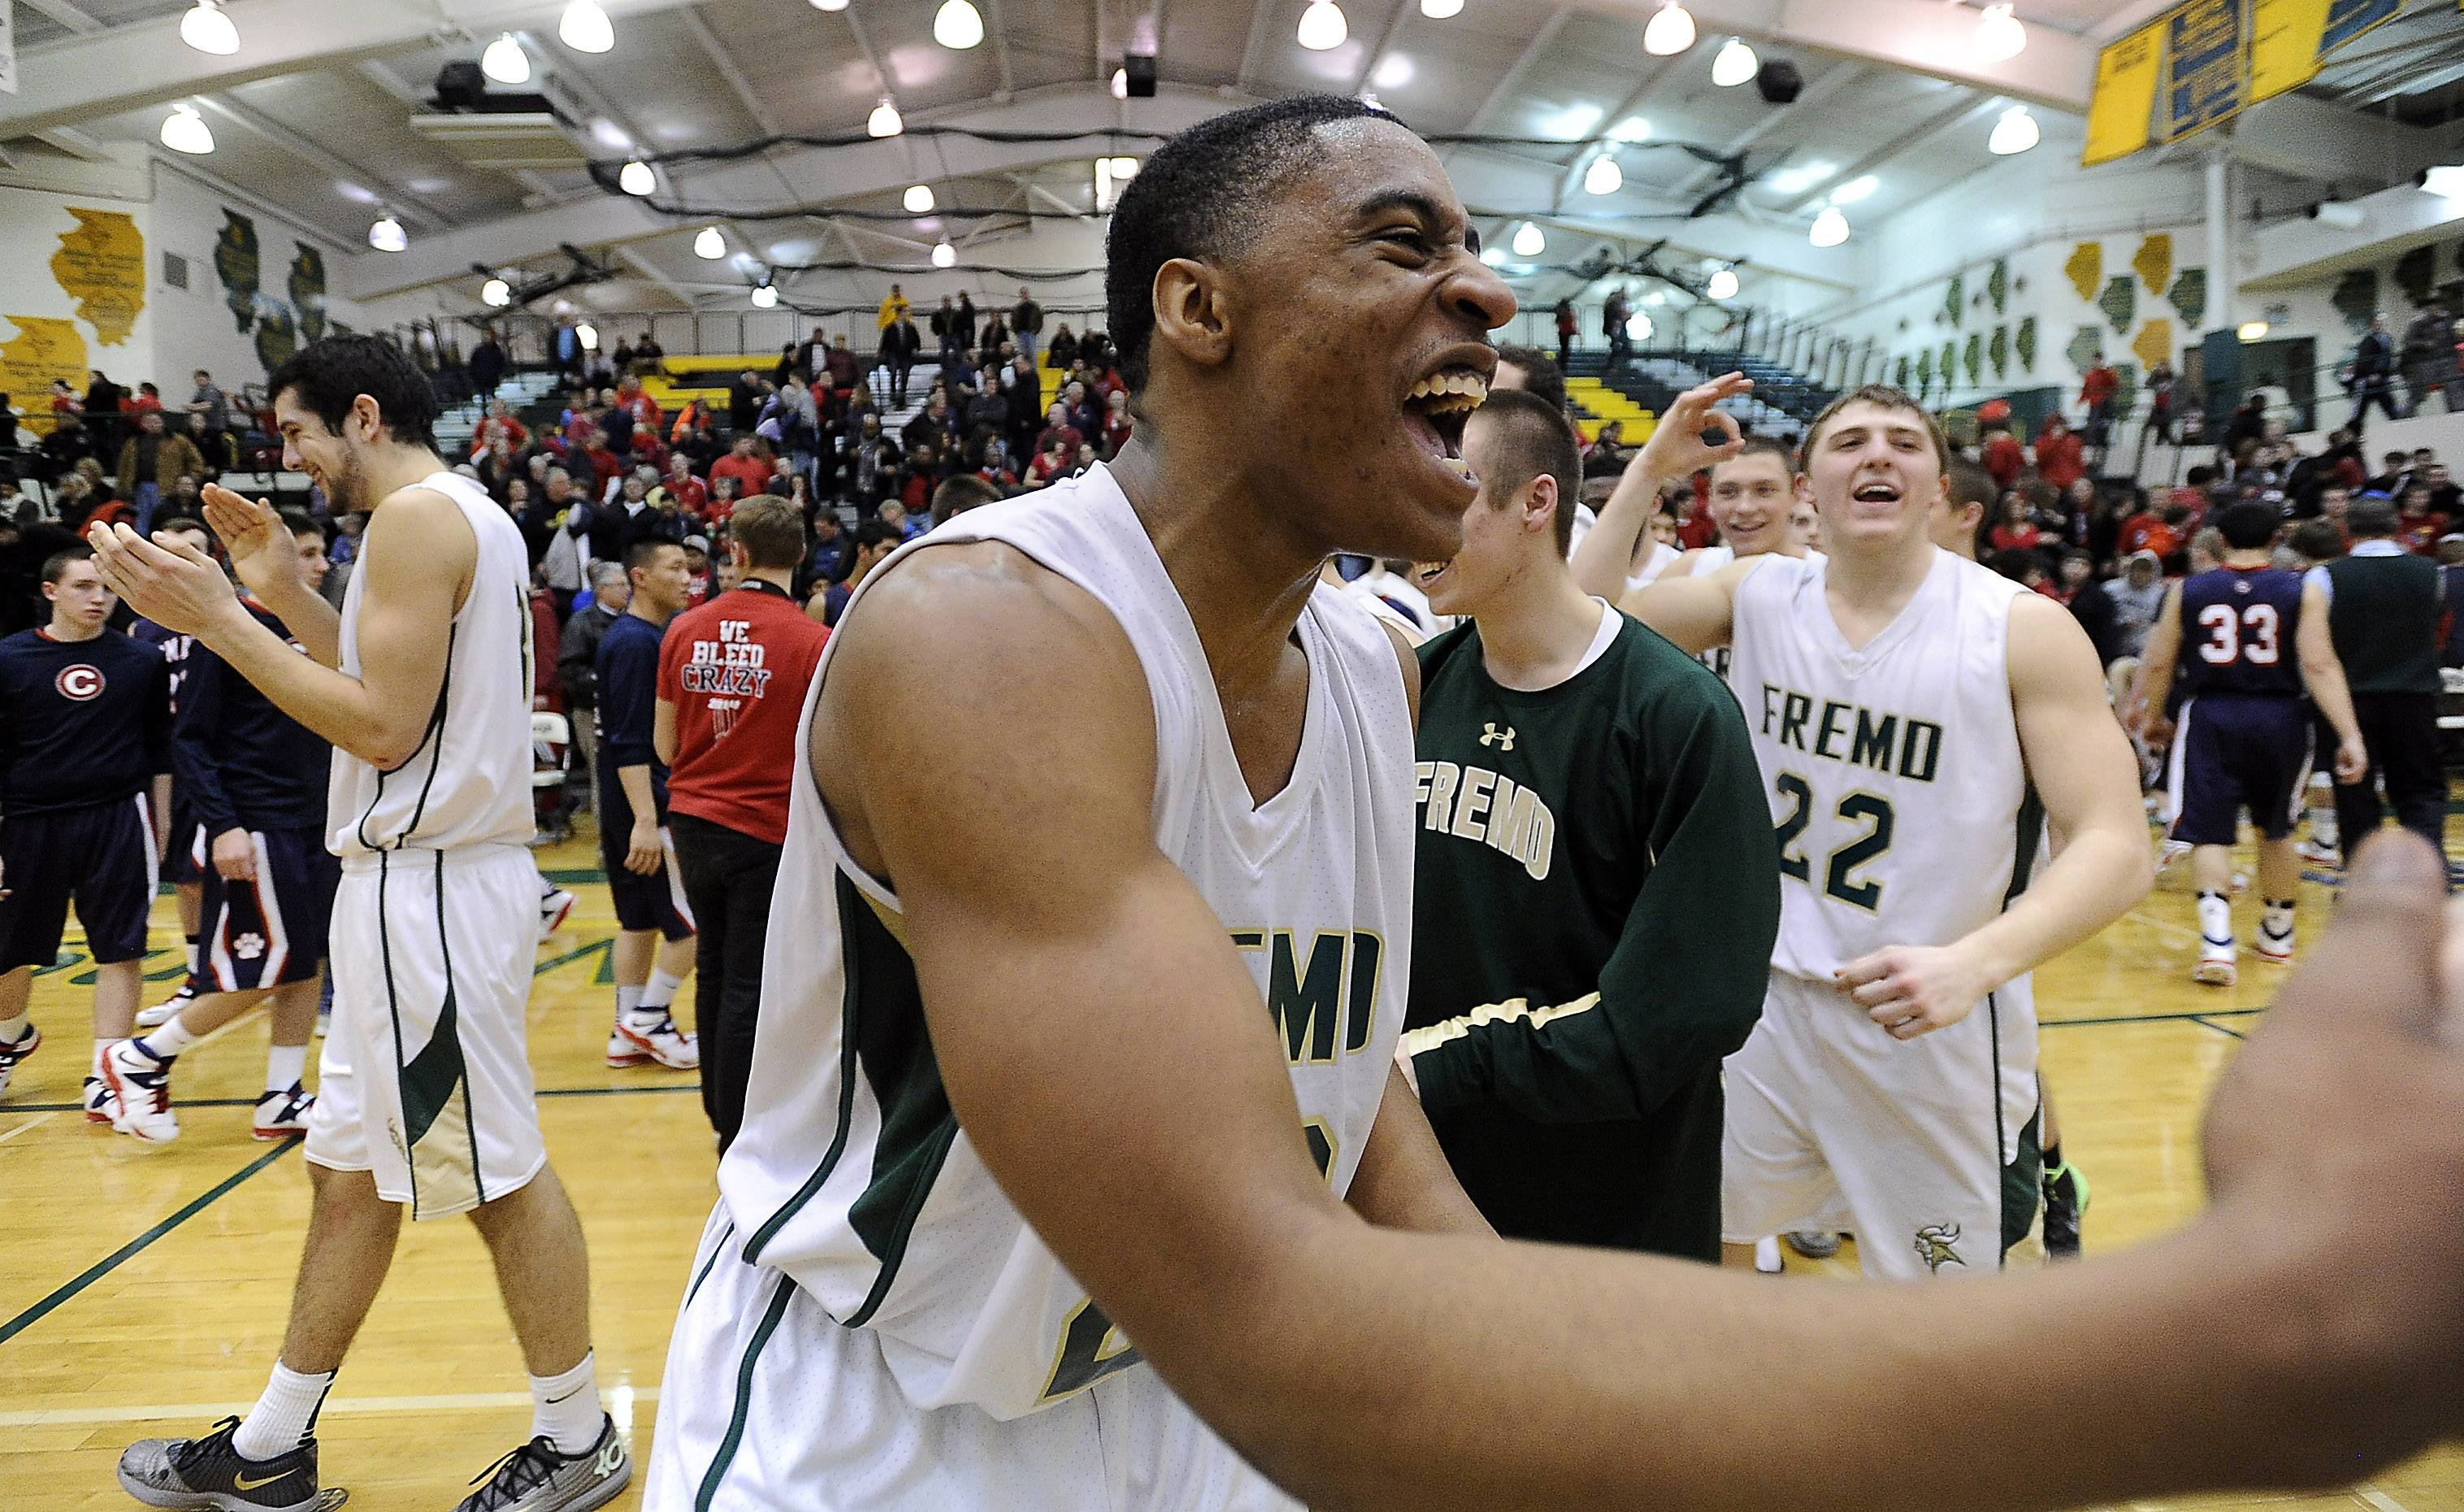 Fremd's Xavier Williams celebrates with his teammates after beating Conant for a share of the MSL West title .